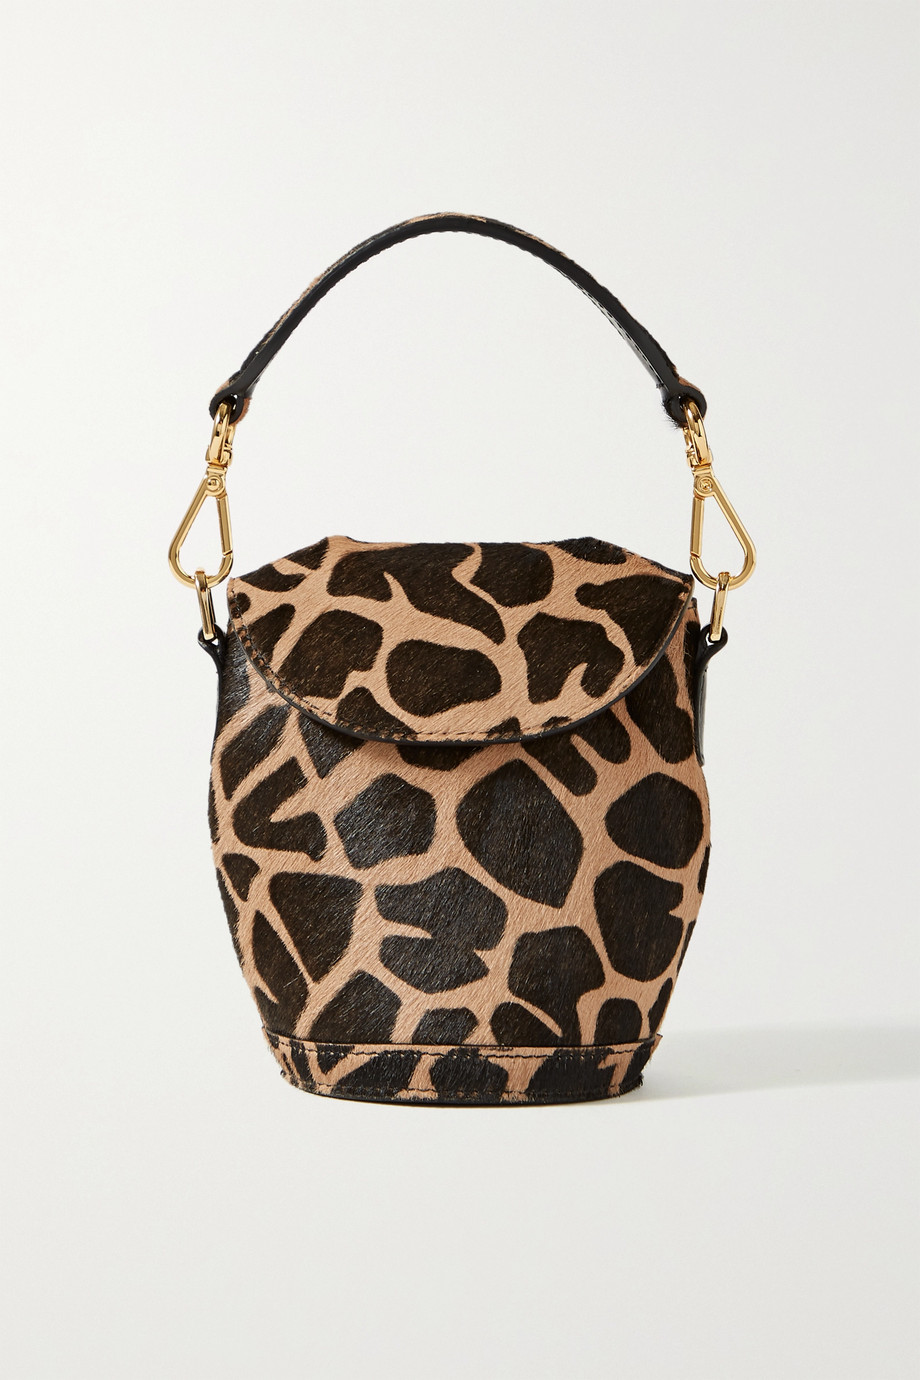 S.Joon Milk Pail mini animal-print calf hair tote